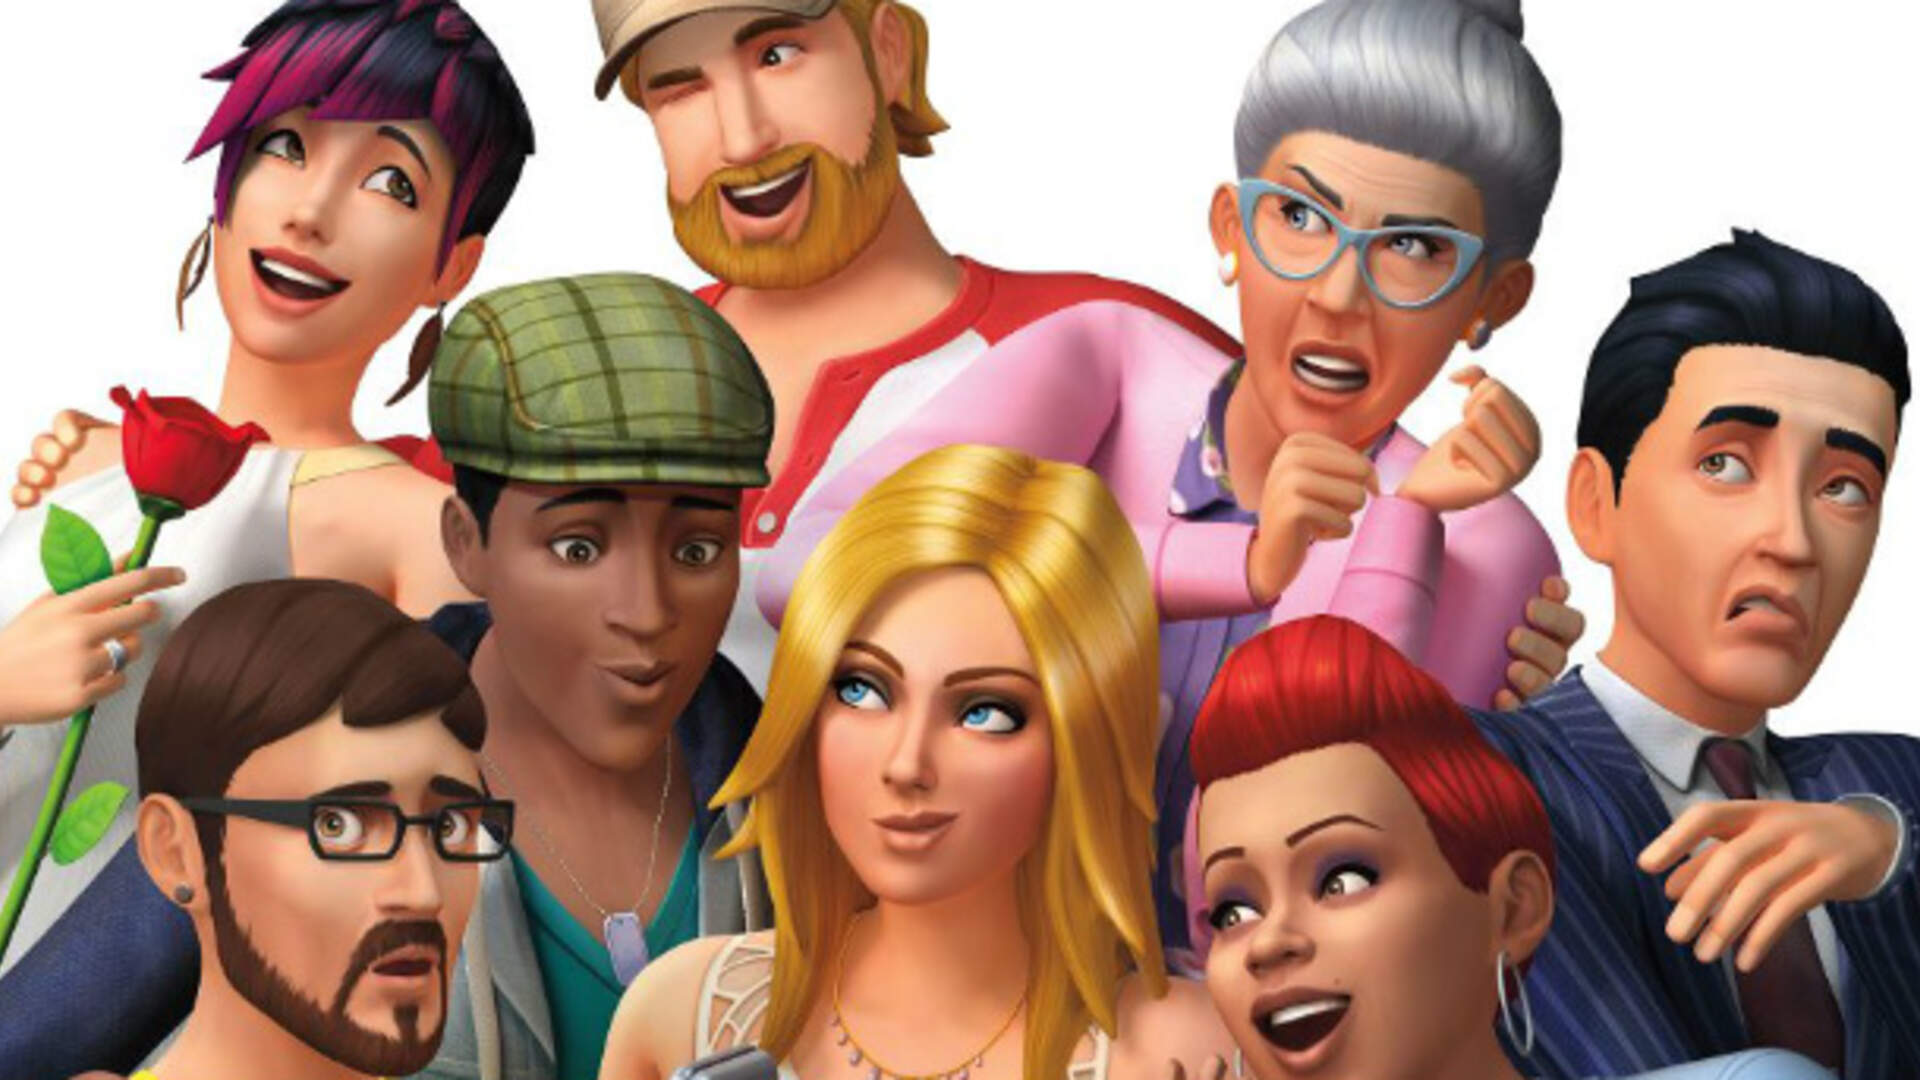 Sims 4 Cats and Dogs Expansion Now Live on PS4 and Xbox One Consoles